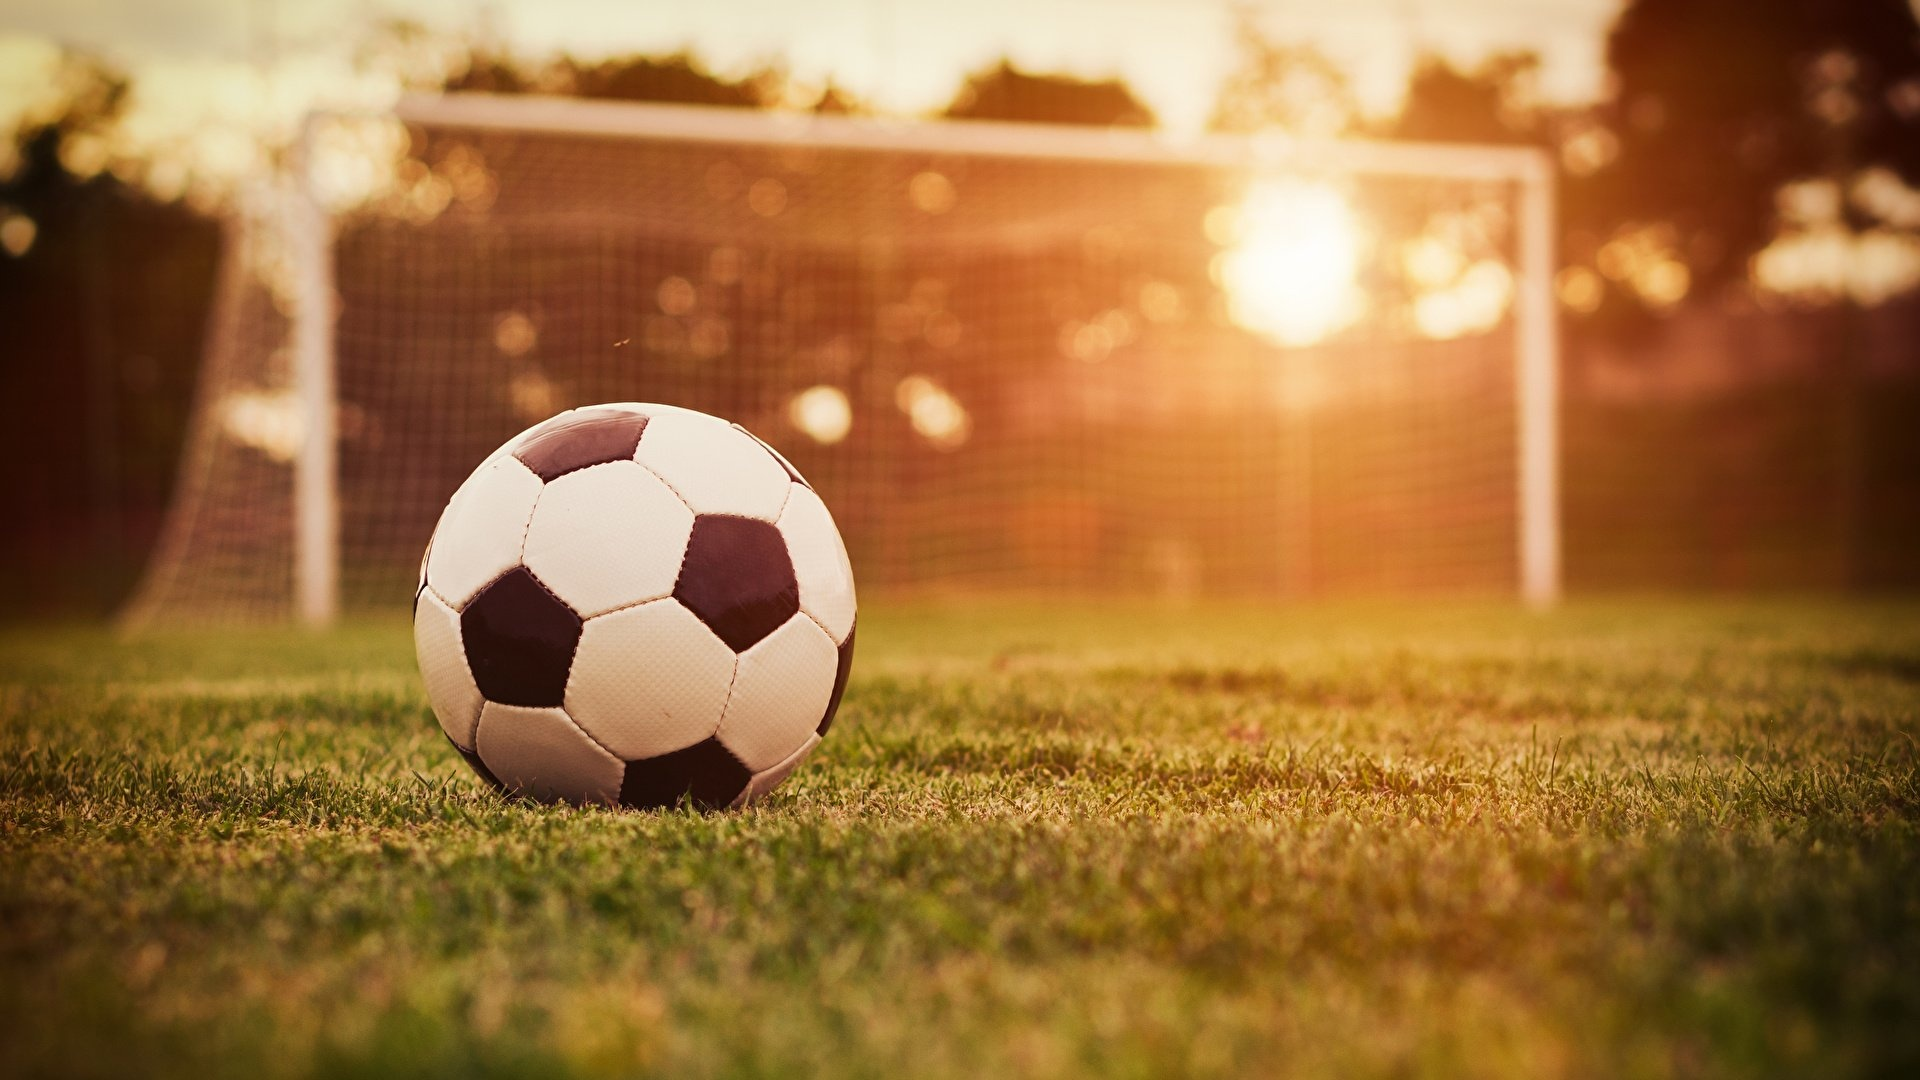 Soccer hd background